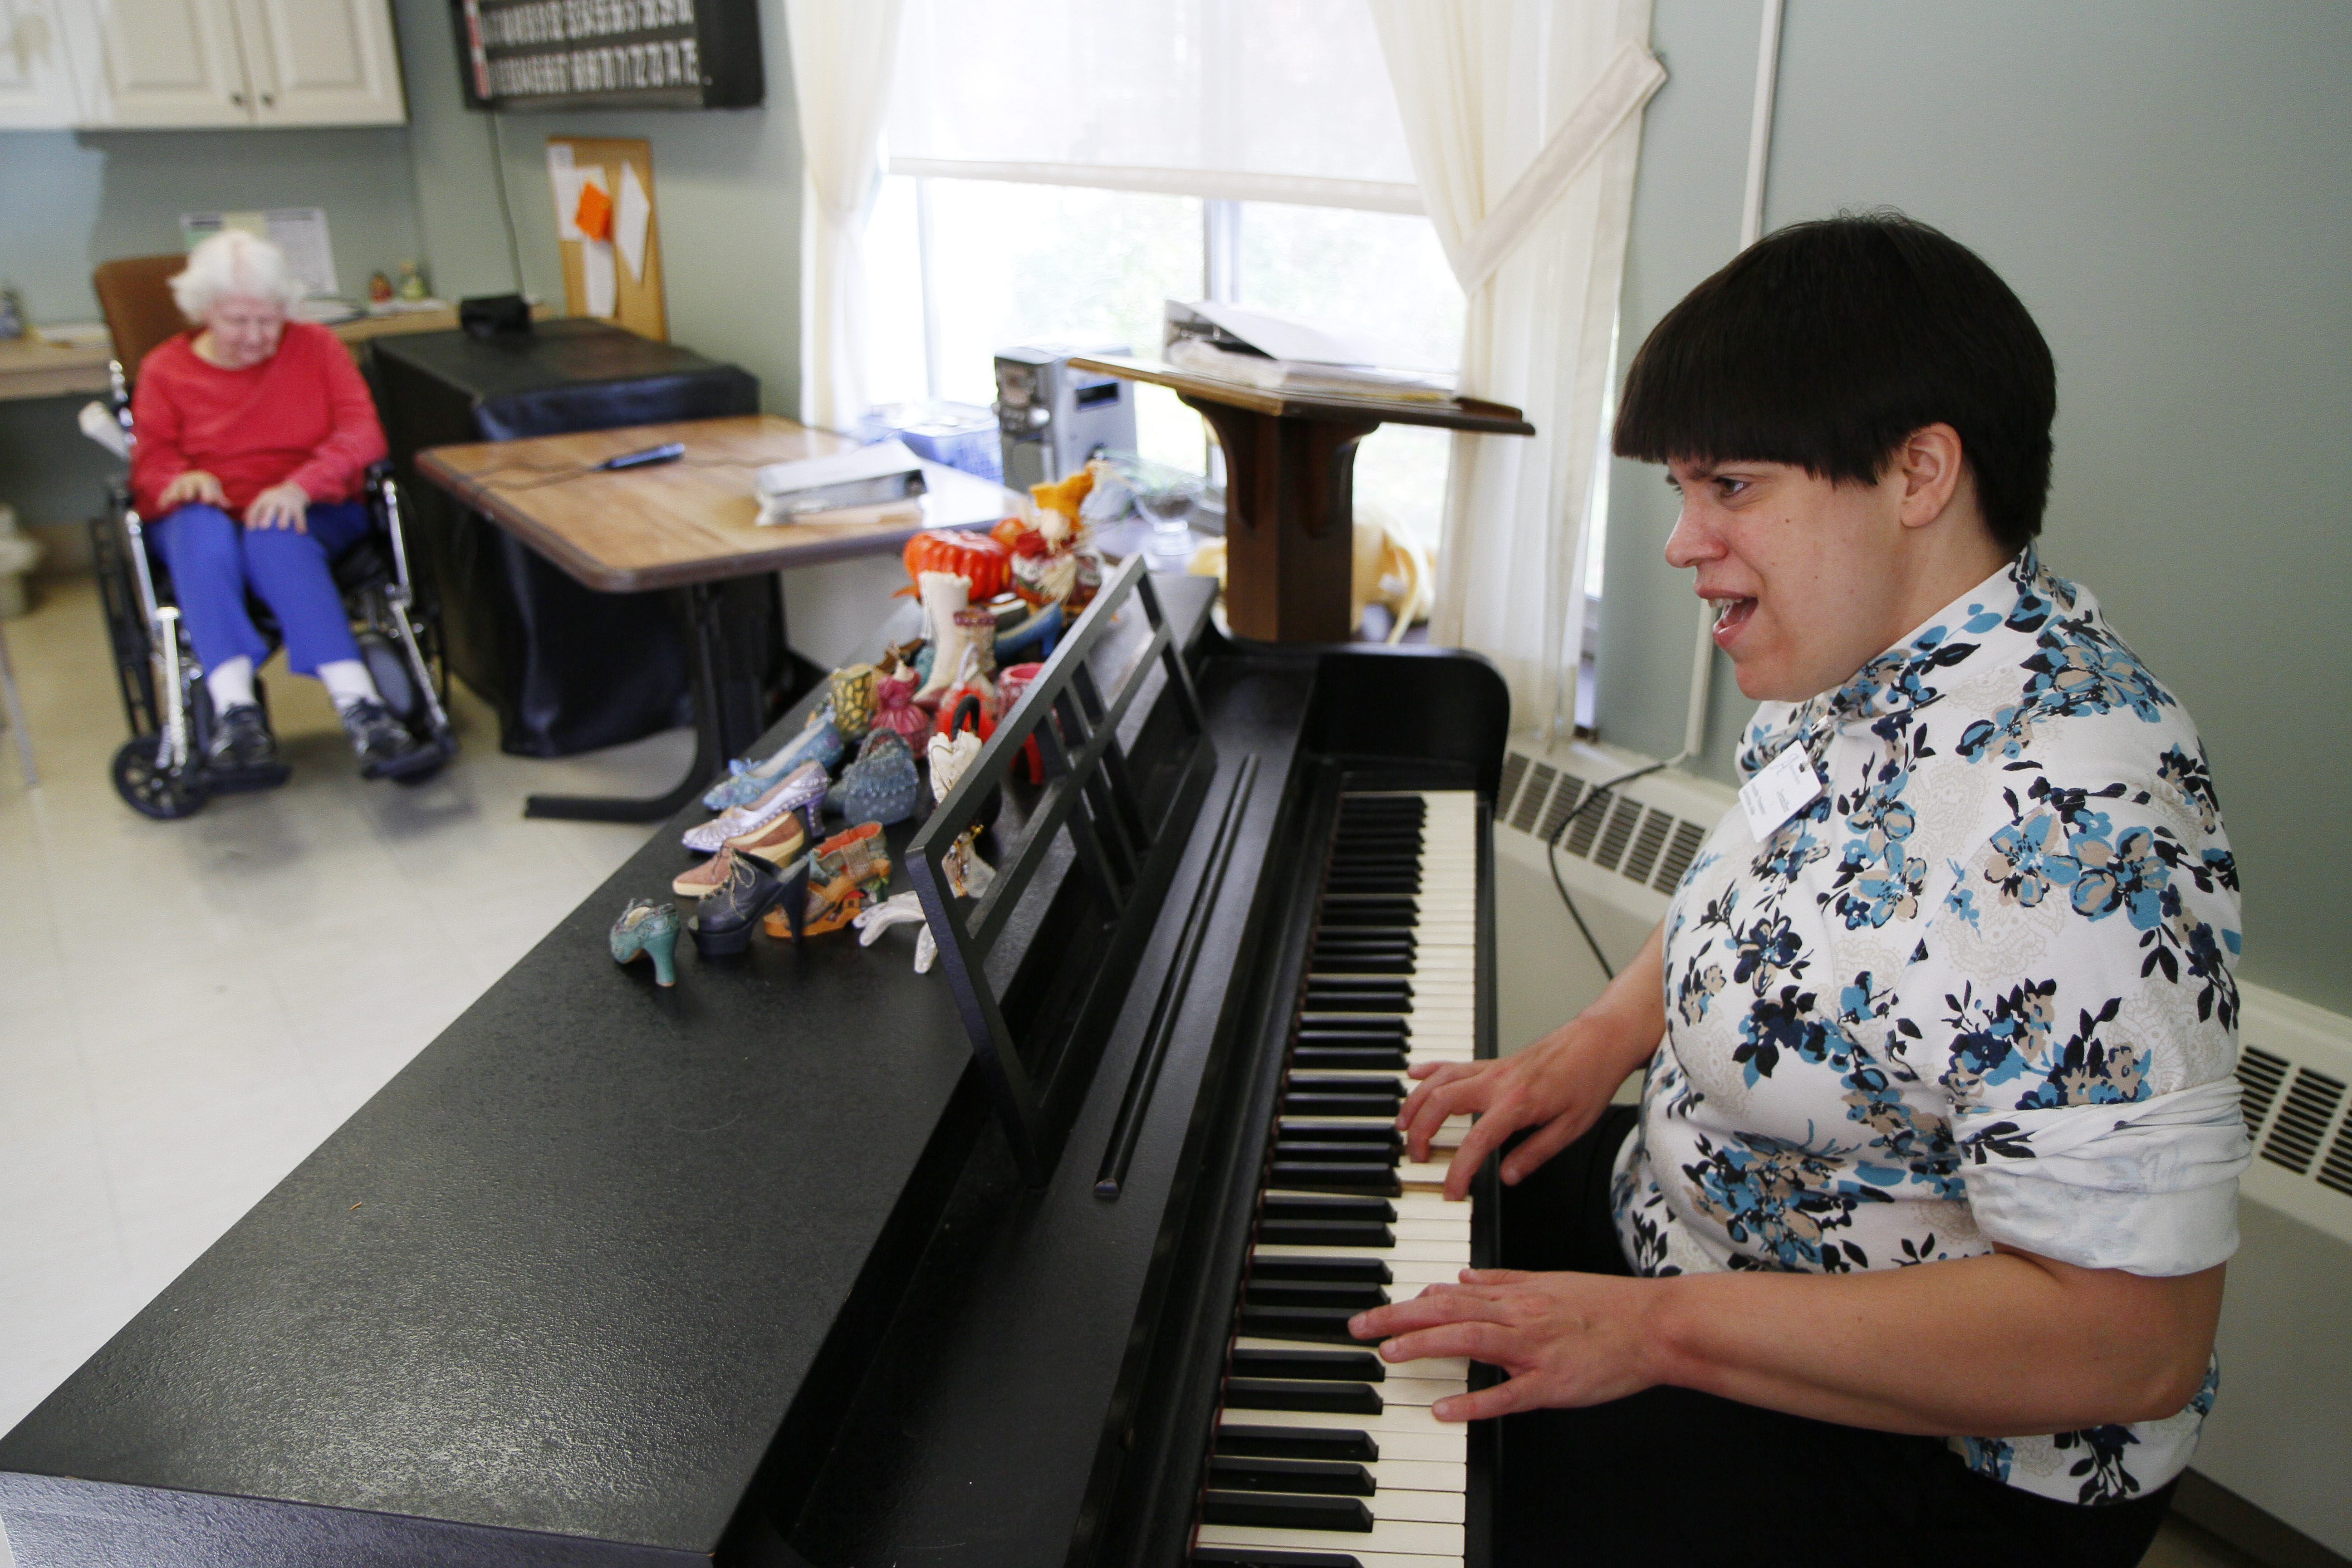 Jenny Trometer, 35, of Wales, performs for residents last week at Absolut Care of Aurora Park in East Aurora. She is legally blind and can't read music, so she learned to play by listening to recordings that her music teacher sent home with her.